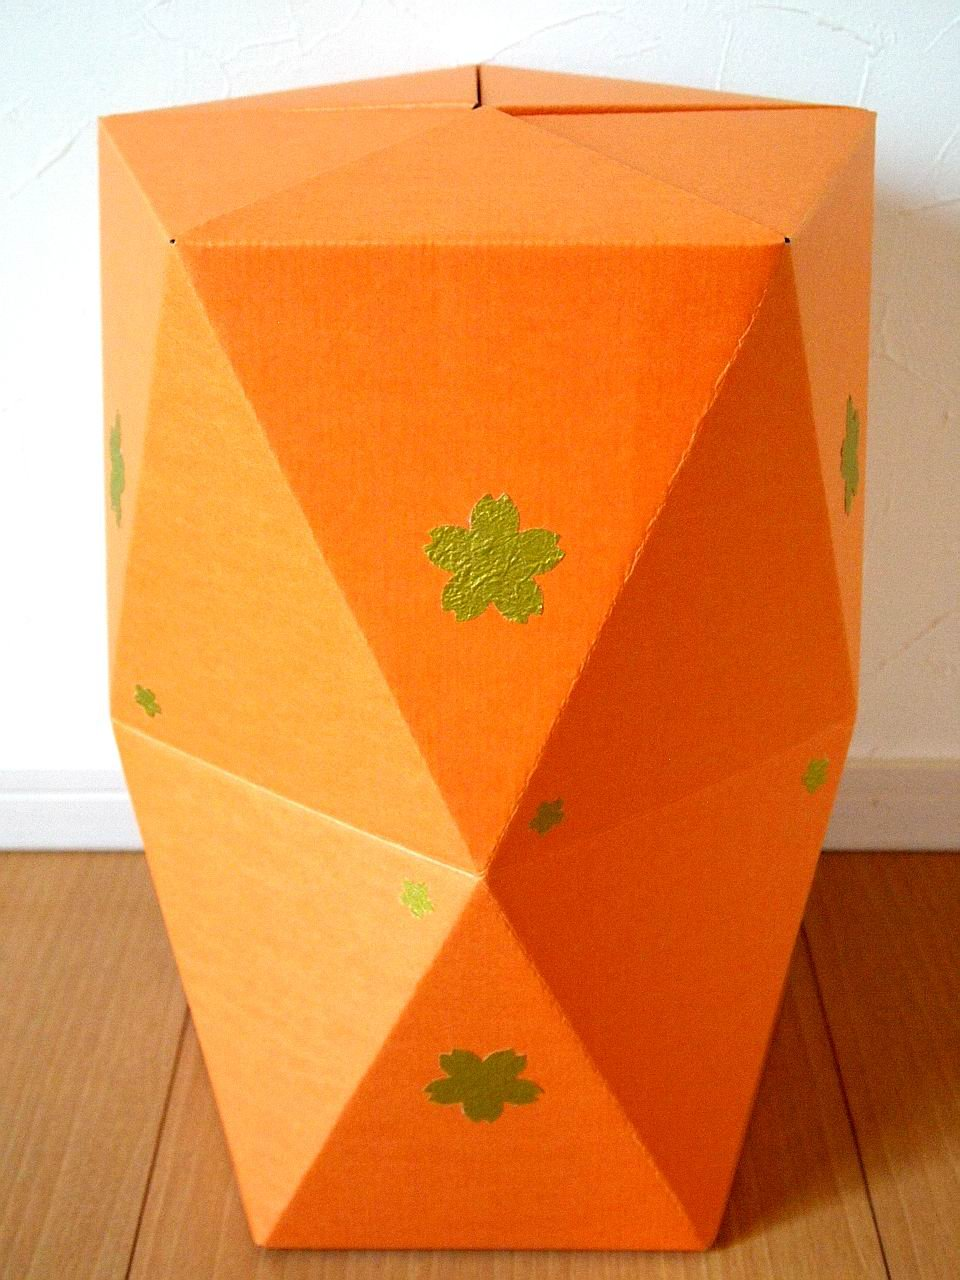 CARBOARD STOOL ~This is made with your hand.~ (Orange)